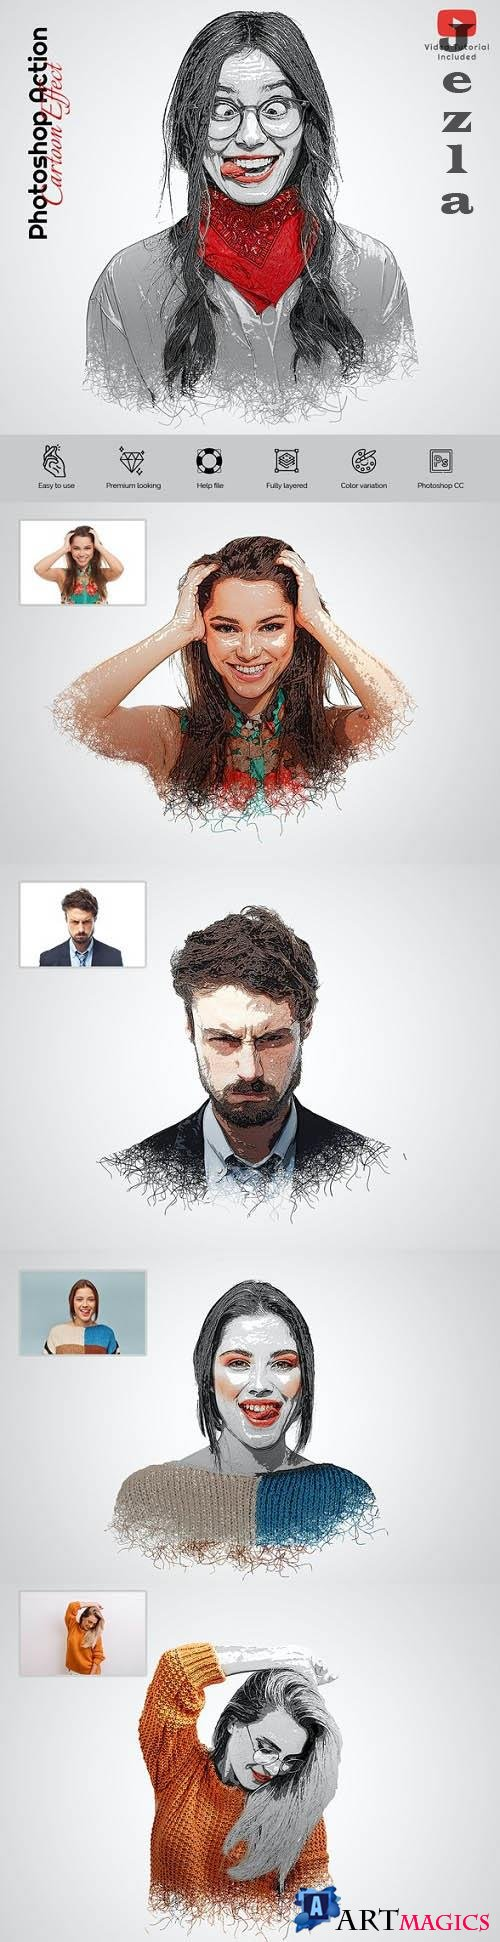 GraphicRiver - Cartoon Effects Photoshop Action 29751253